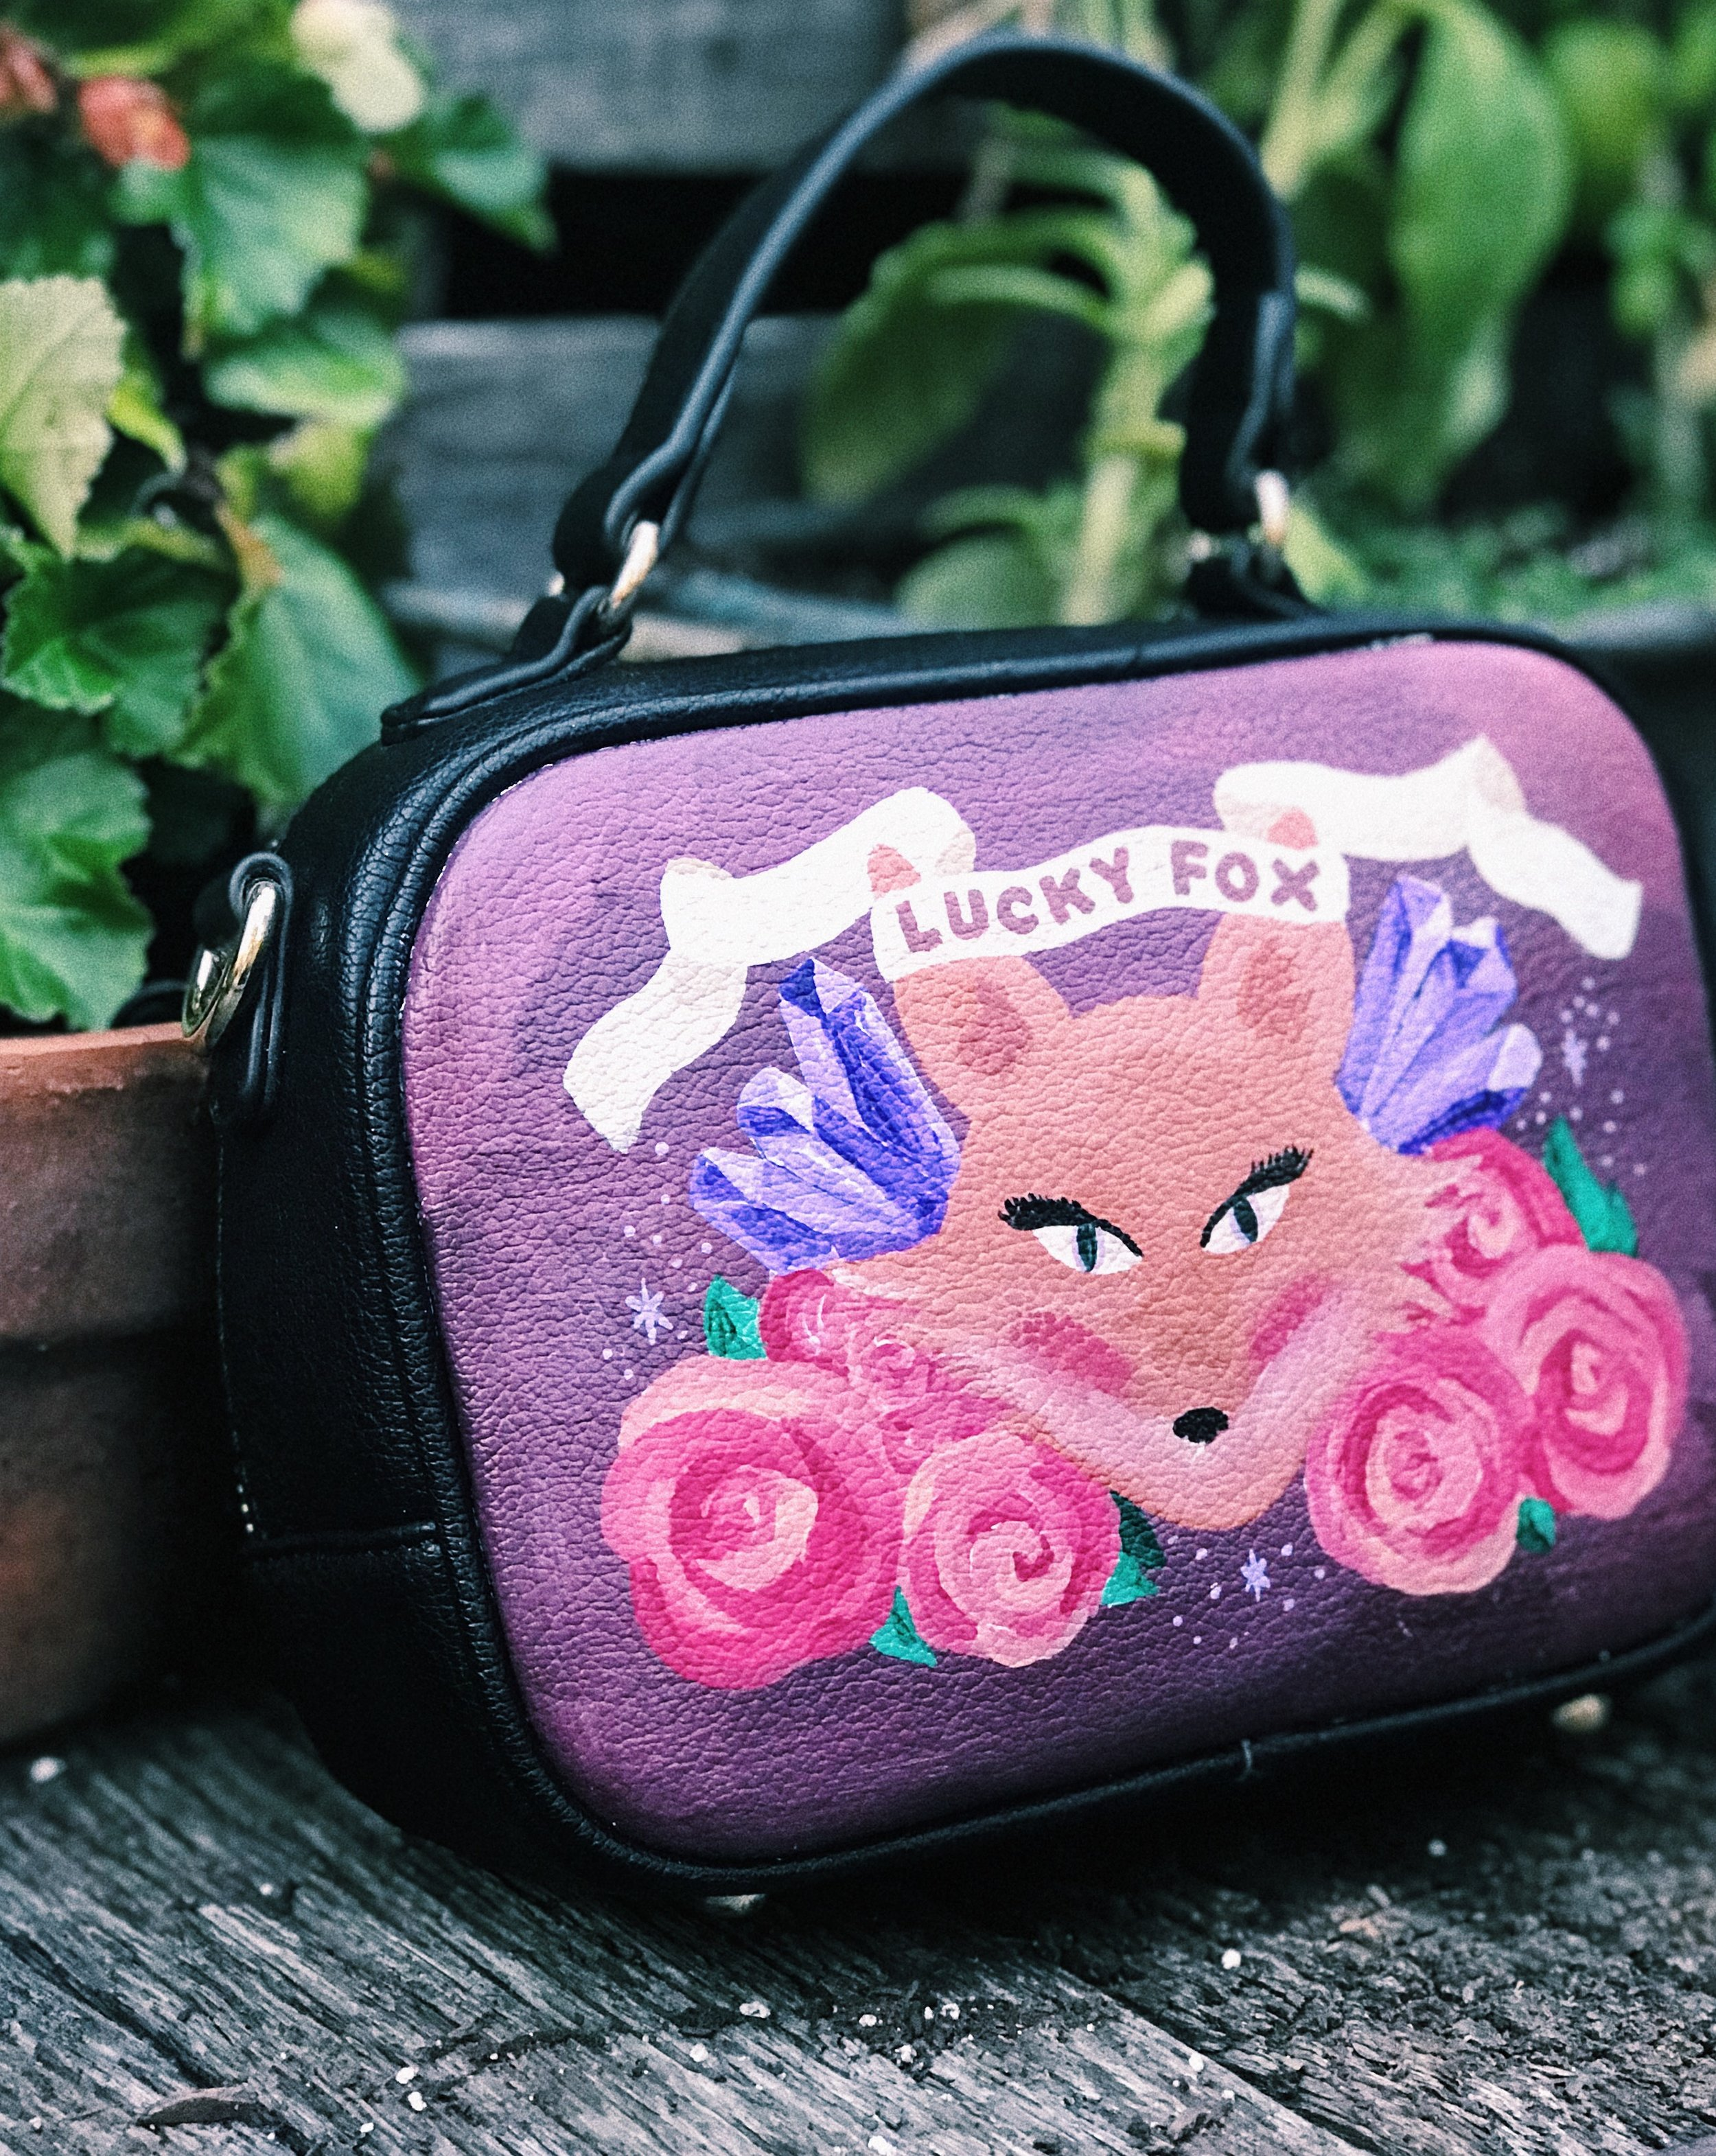 lucky fox ny purse - 3/3 bags I customized for 3 babes KILLING their side hustle. Check out Lucky Fox NY apothecary + jewlery!